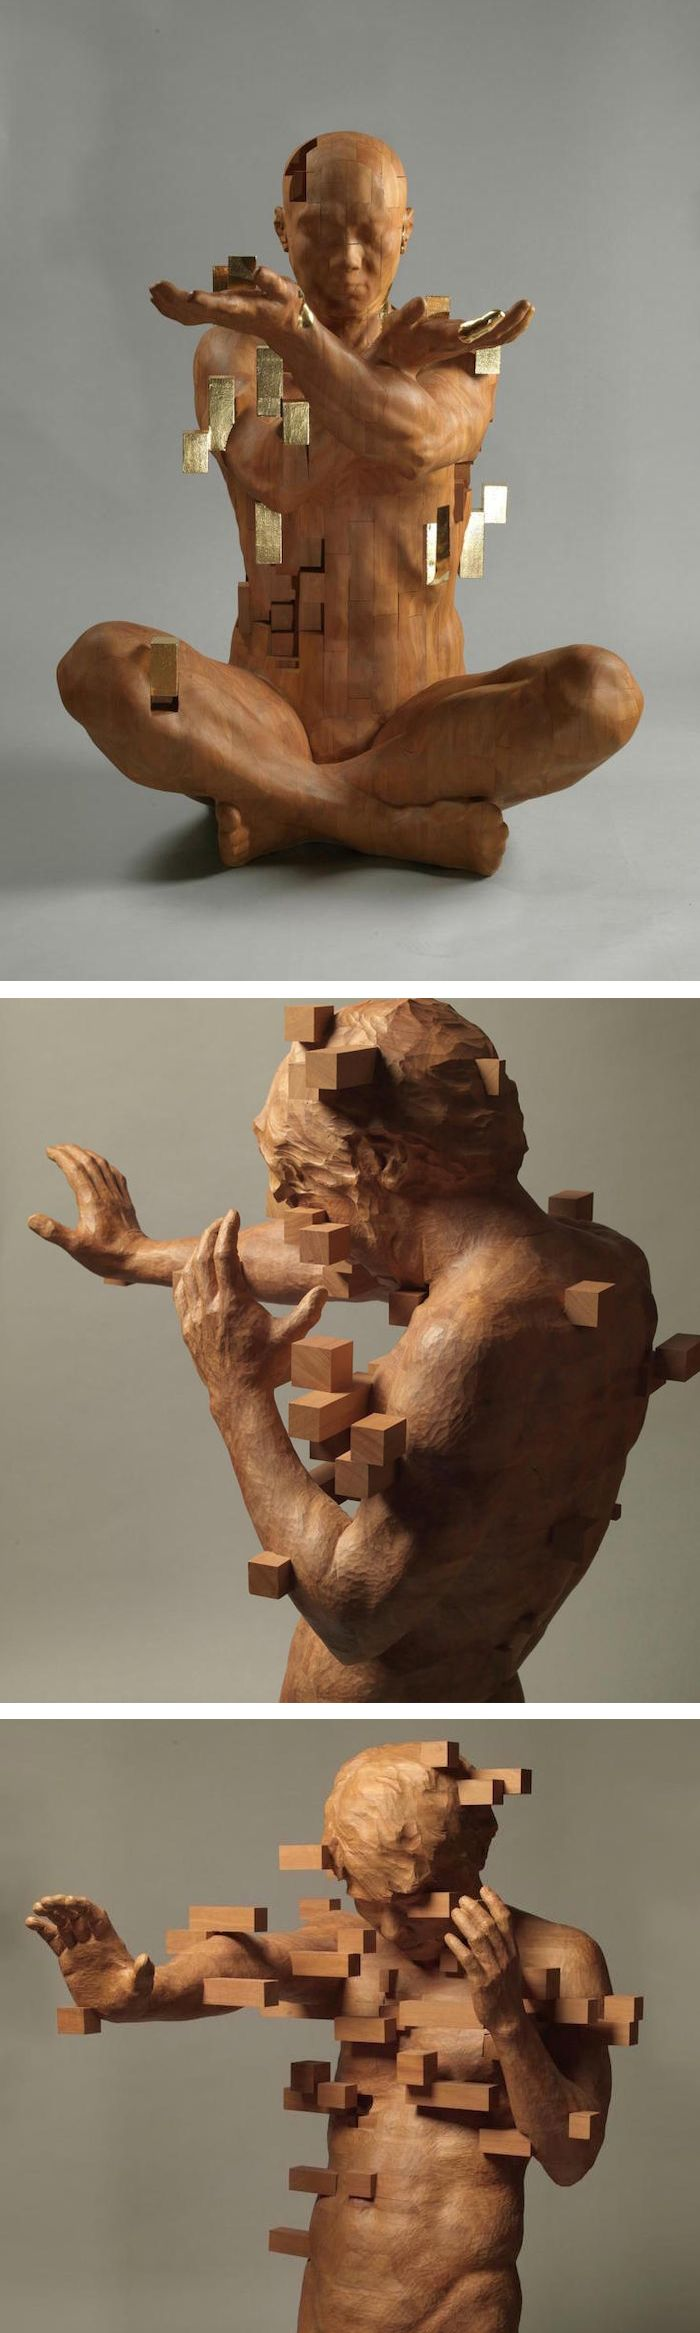 Hsu Tung Han's wooden sculptures look like pixelated images.